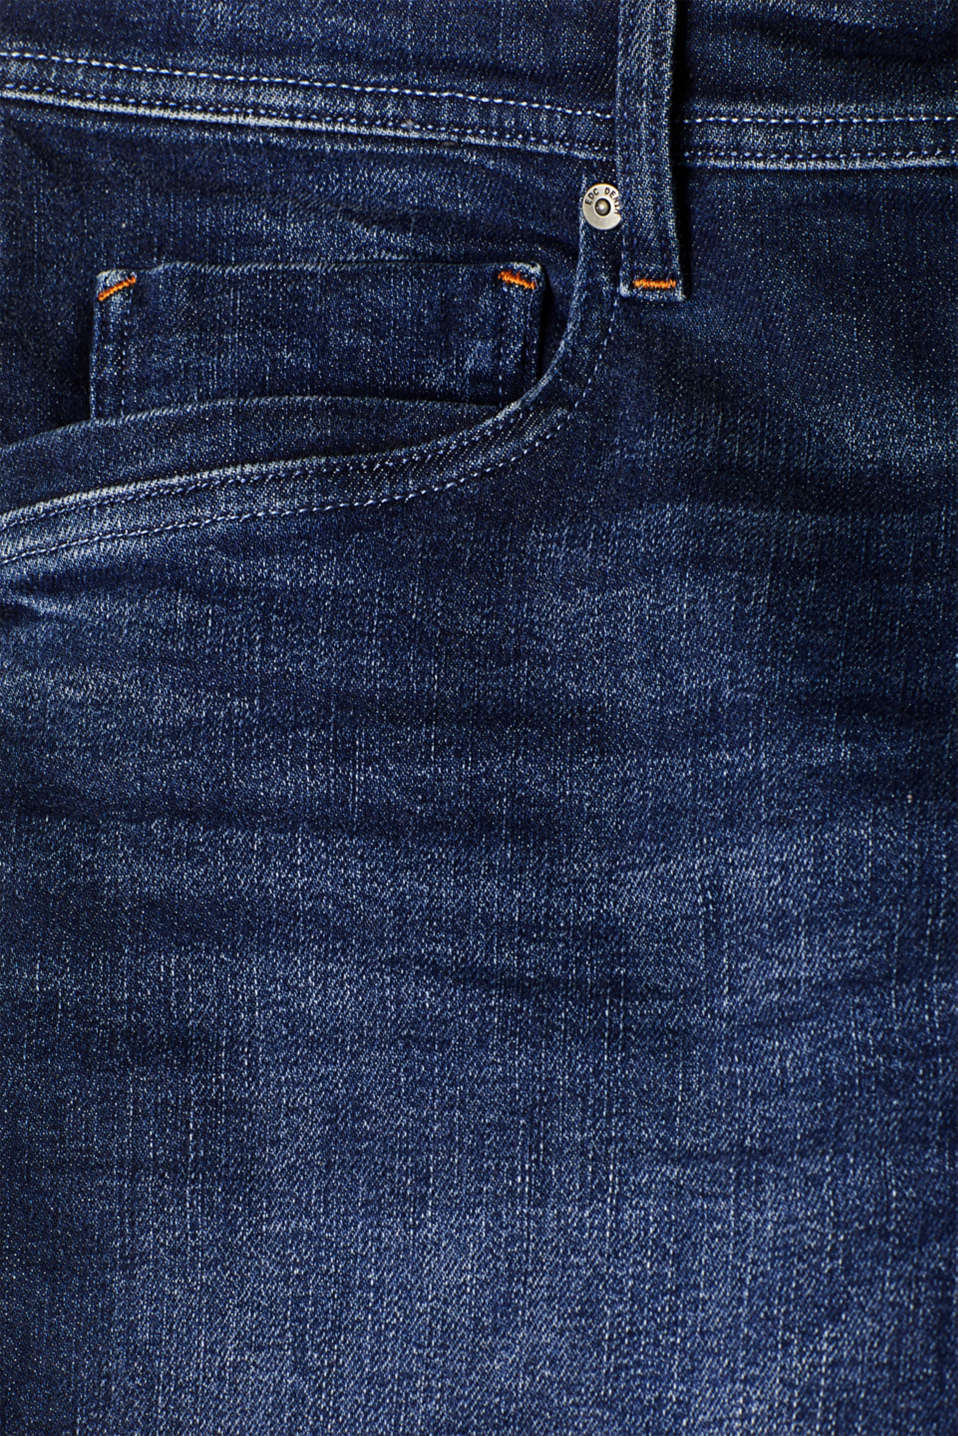 Shorts denim, BLUE DARK WASH, detail image number 4